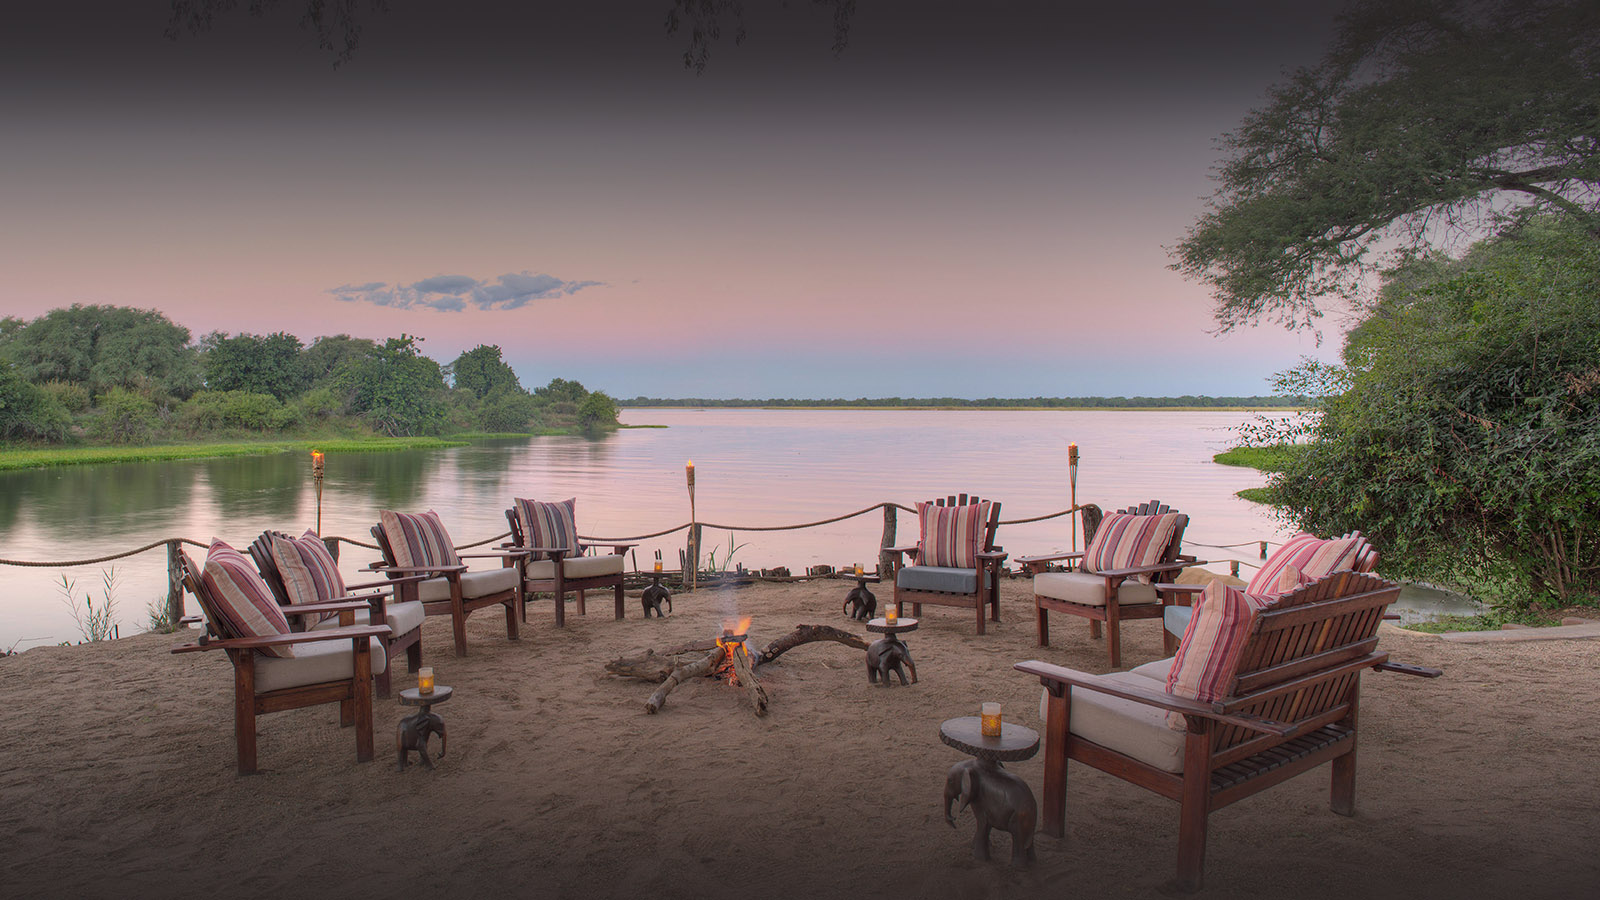 chongwe camp zambia-in-style-zambia-lodges-lower-zambezi-national-park-tents-wildlife-camp-fire